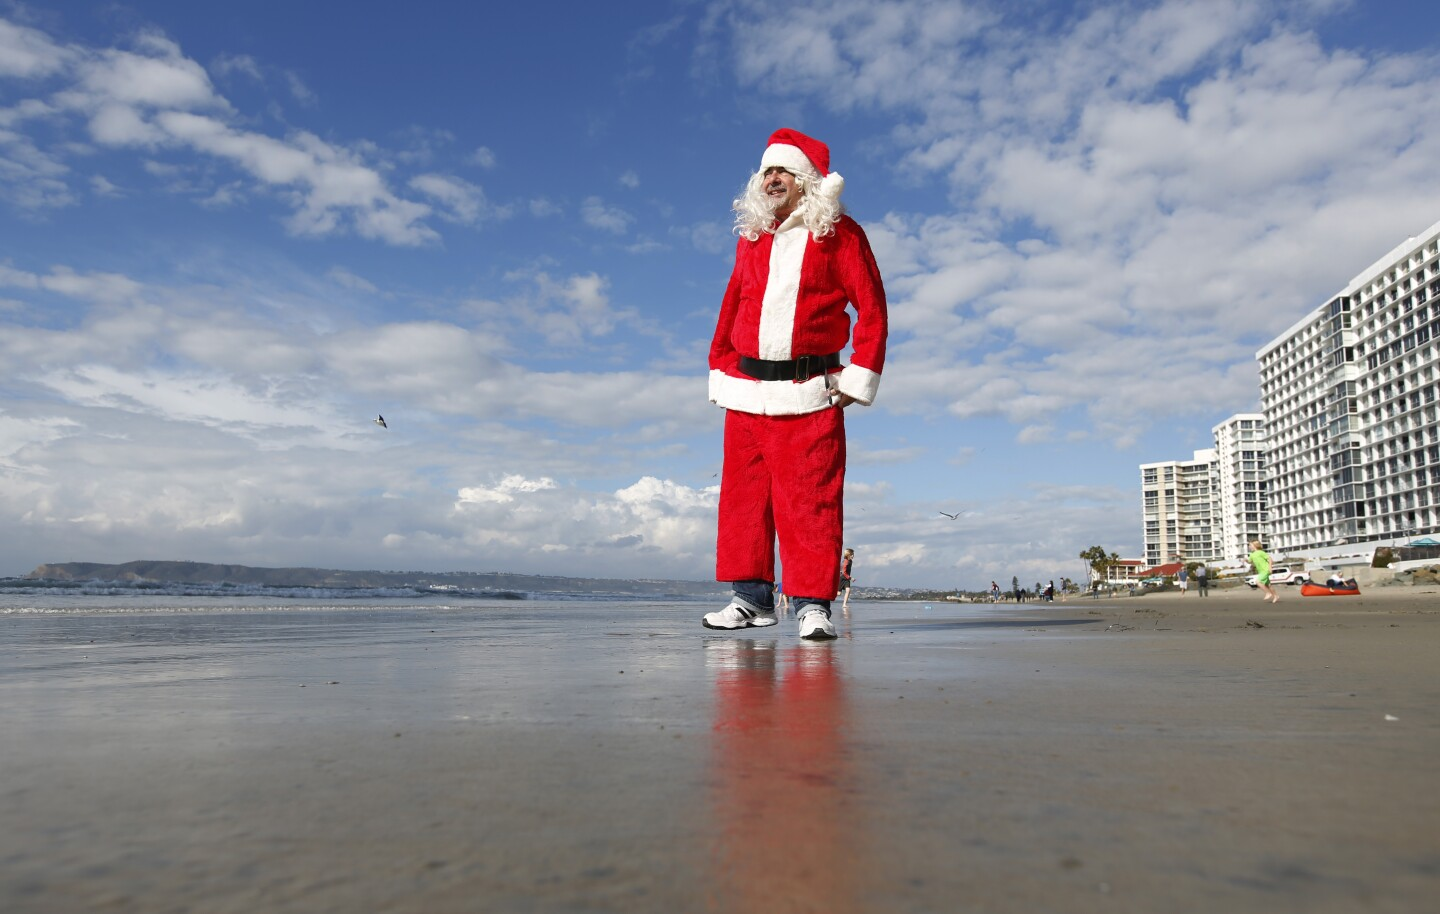 Alan Zada, dressed as Santa Claus, came down to greet surfers during the 9th Annual URT Santa Surf Off and Toy Drive in Coronado on Dec. 24, 2019.